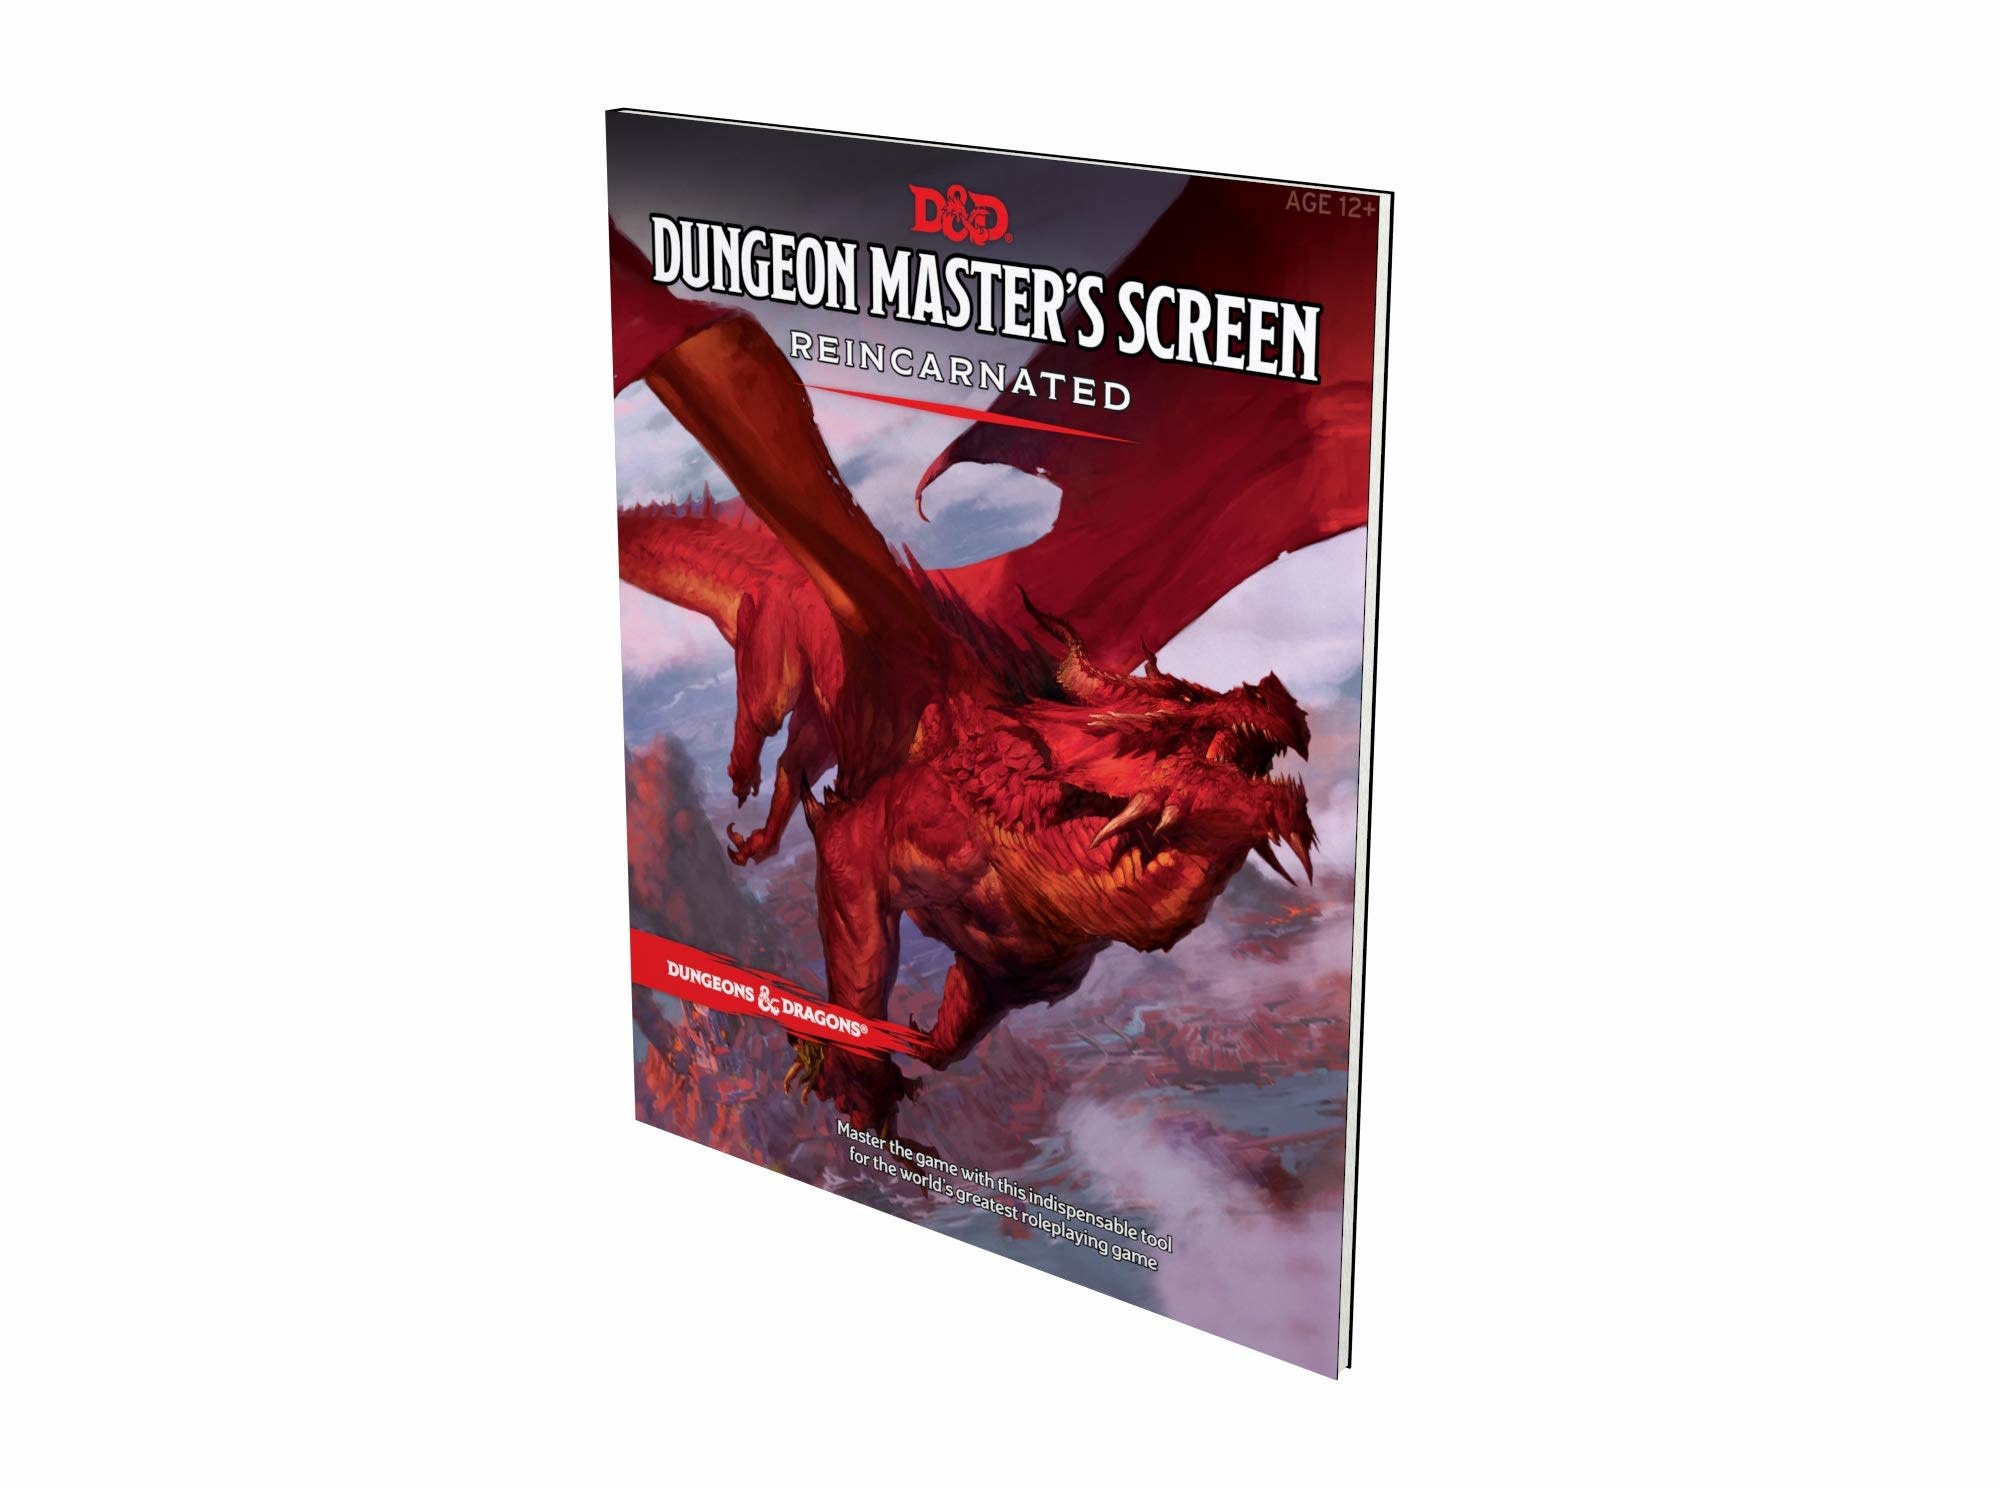 D&D Dungeons & Dragons Dungeon Masters Screen Reincarnated